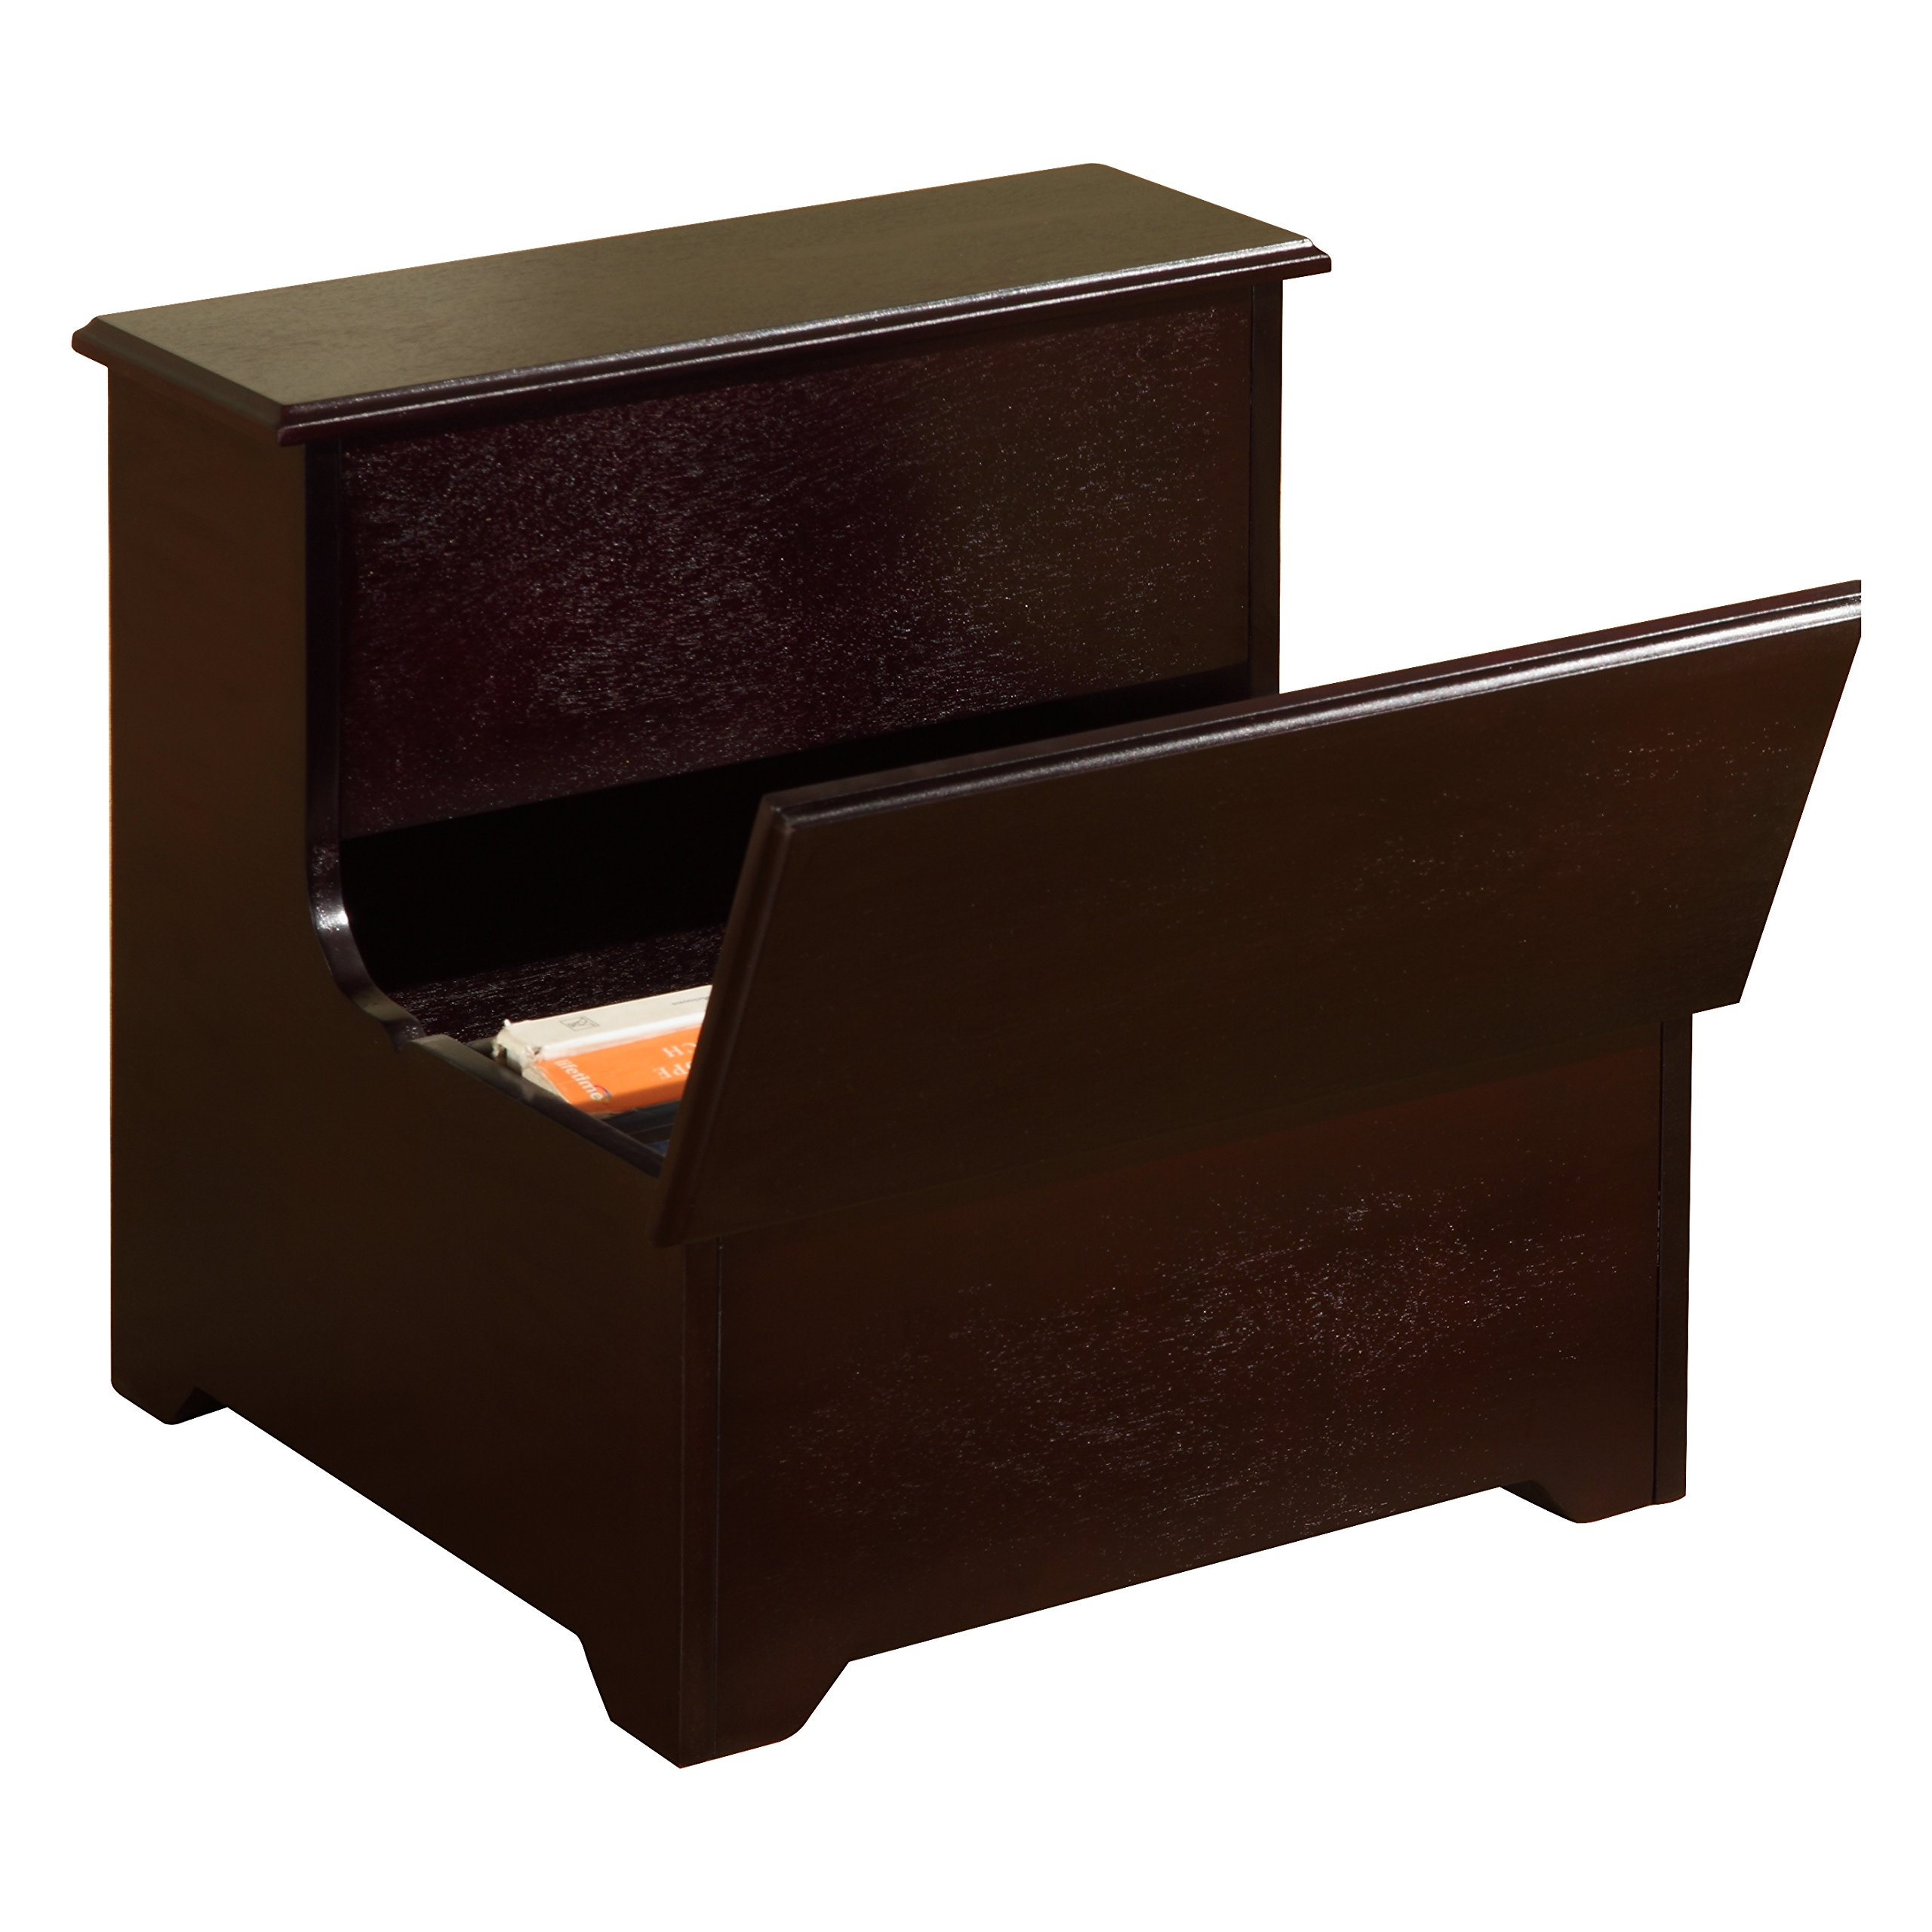 Cheap Step Stool Storage, find Step Stool Storage deals on line at ...